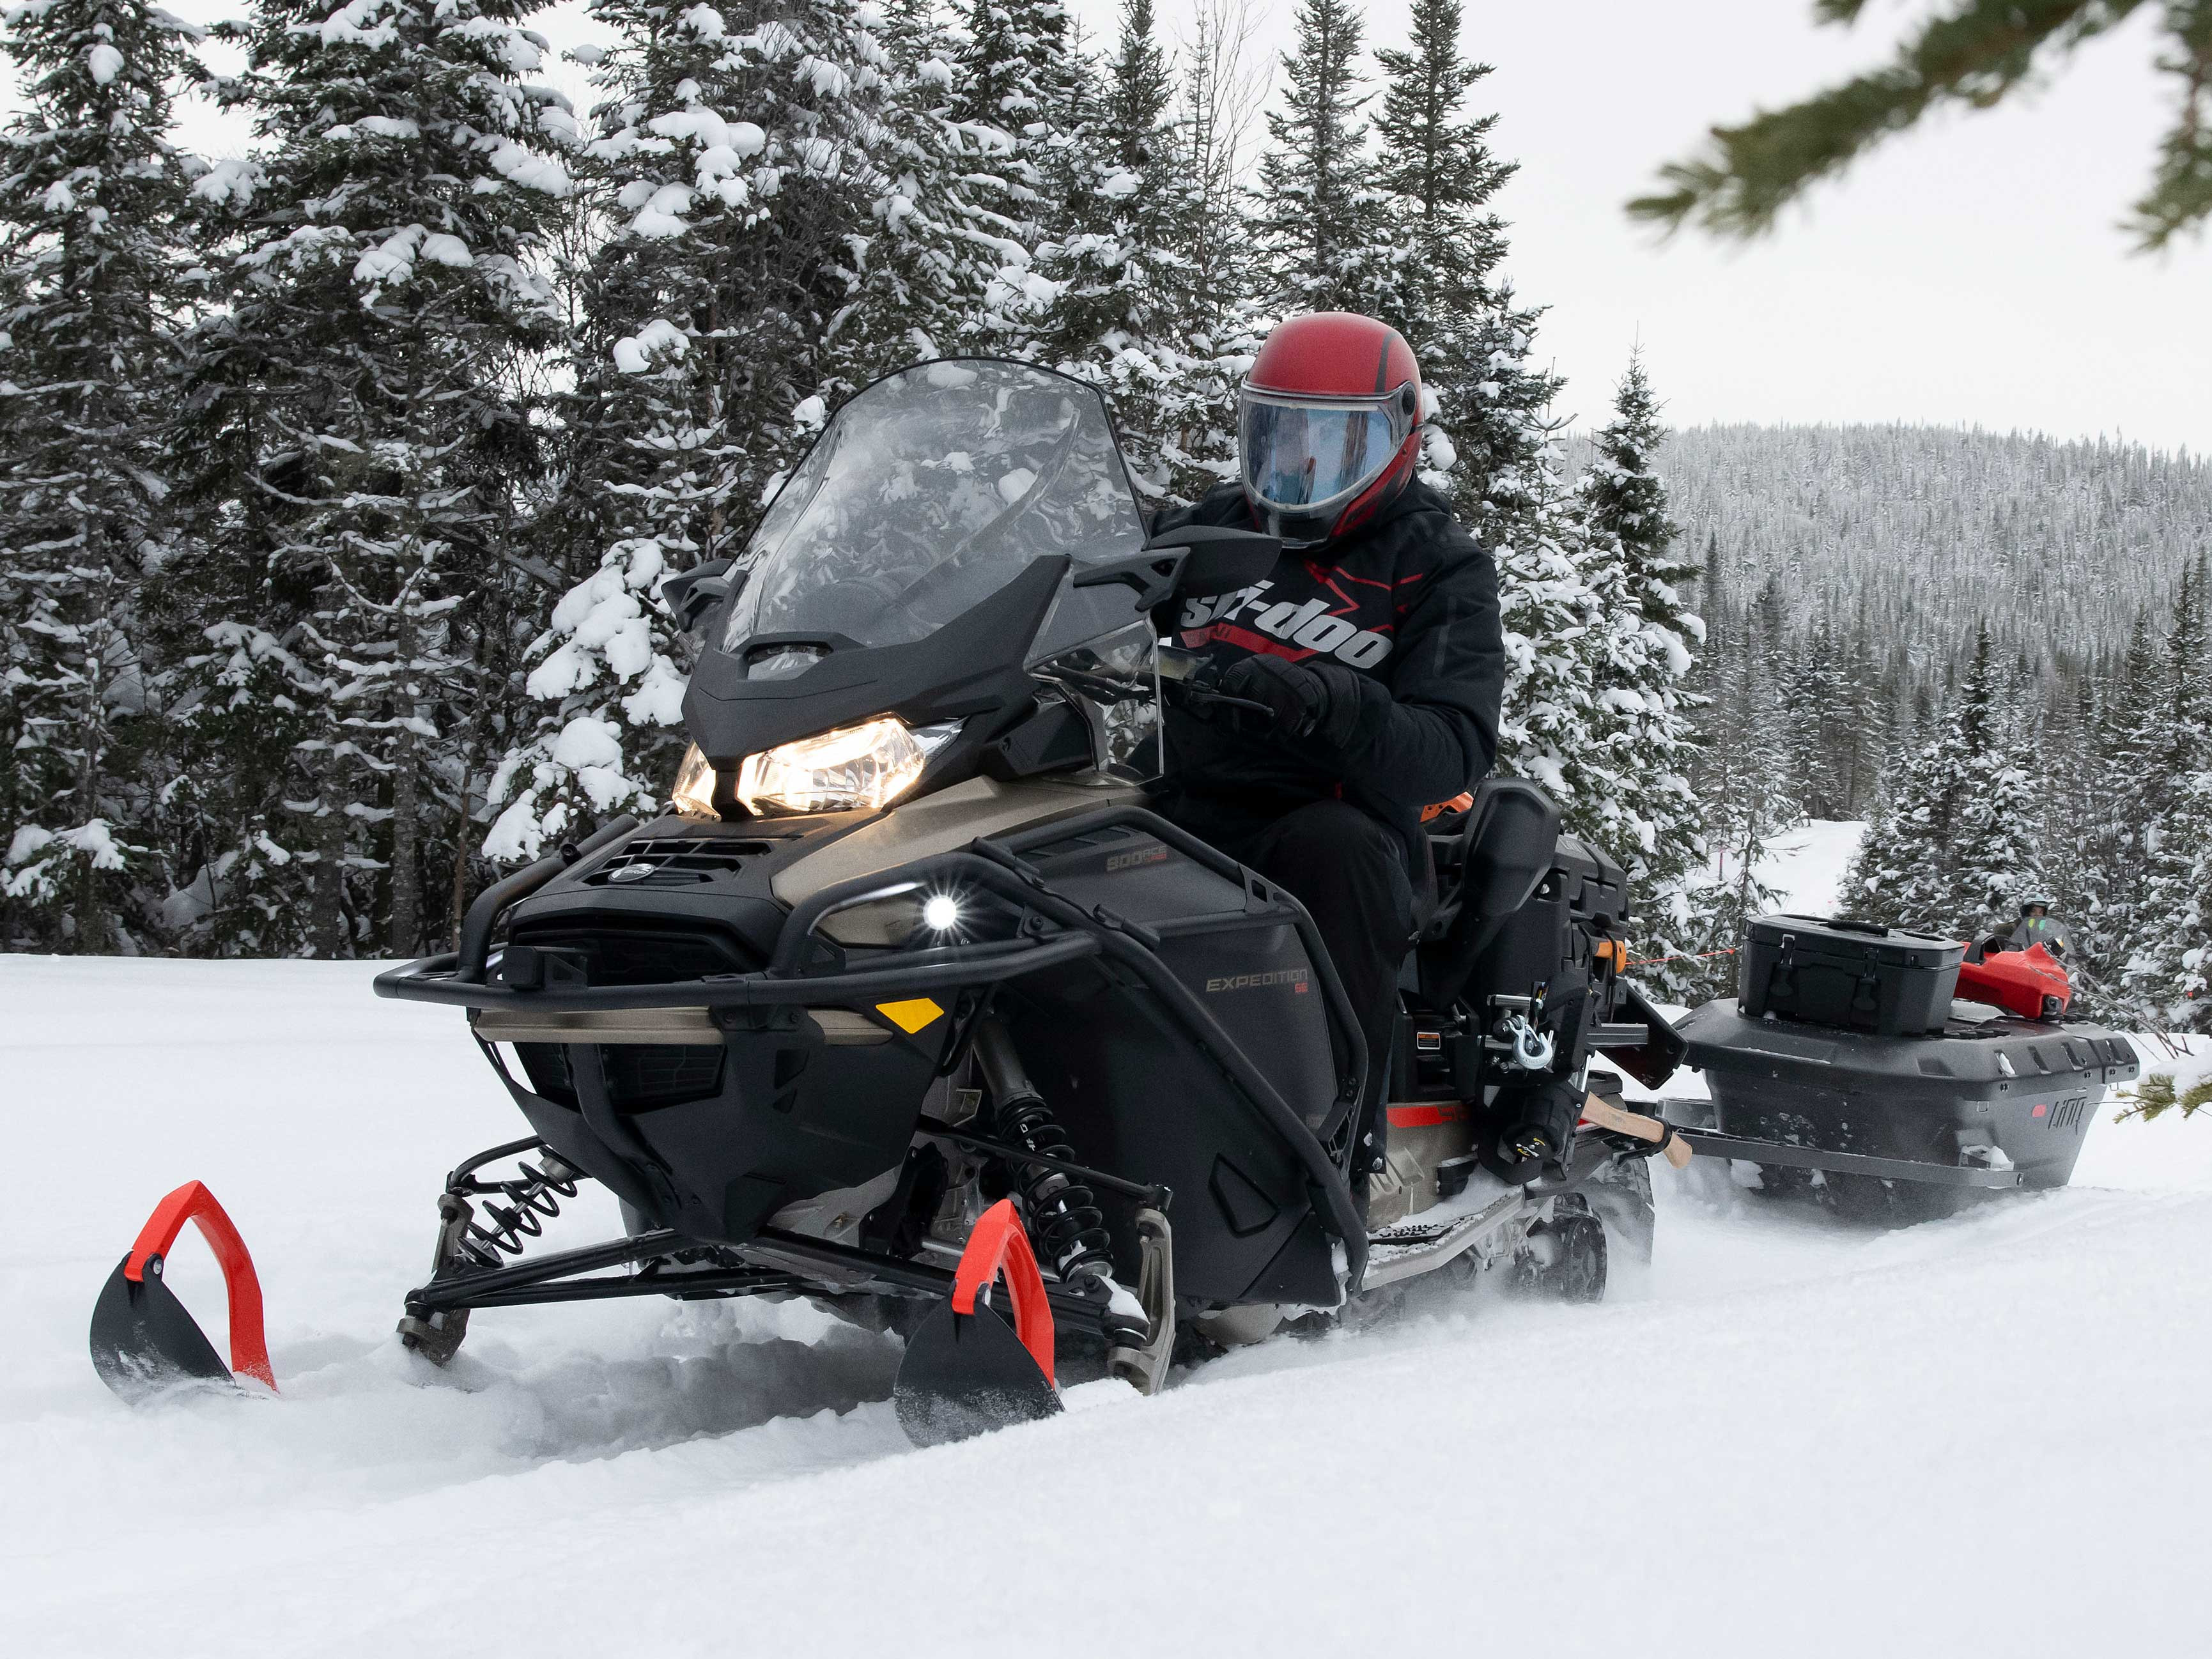 2022 Ski-Doo Expedition towing a sleigh